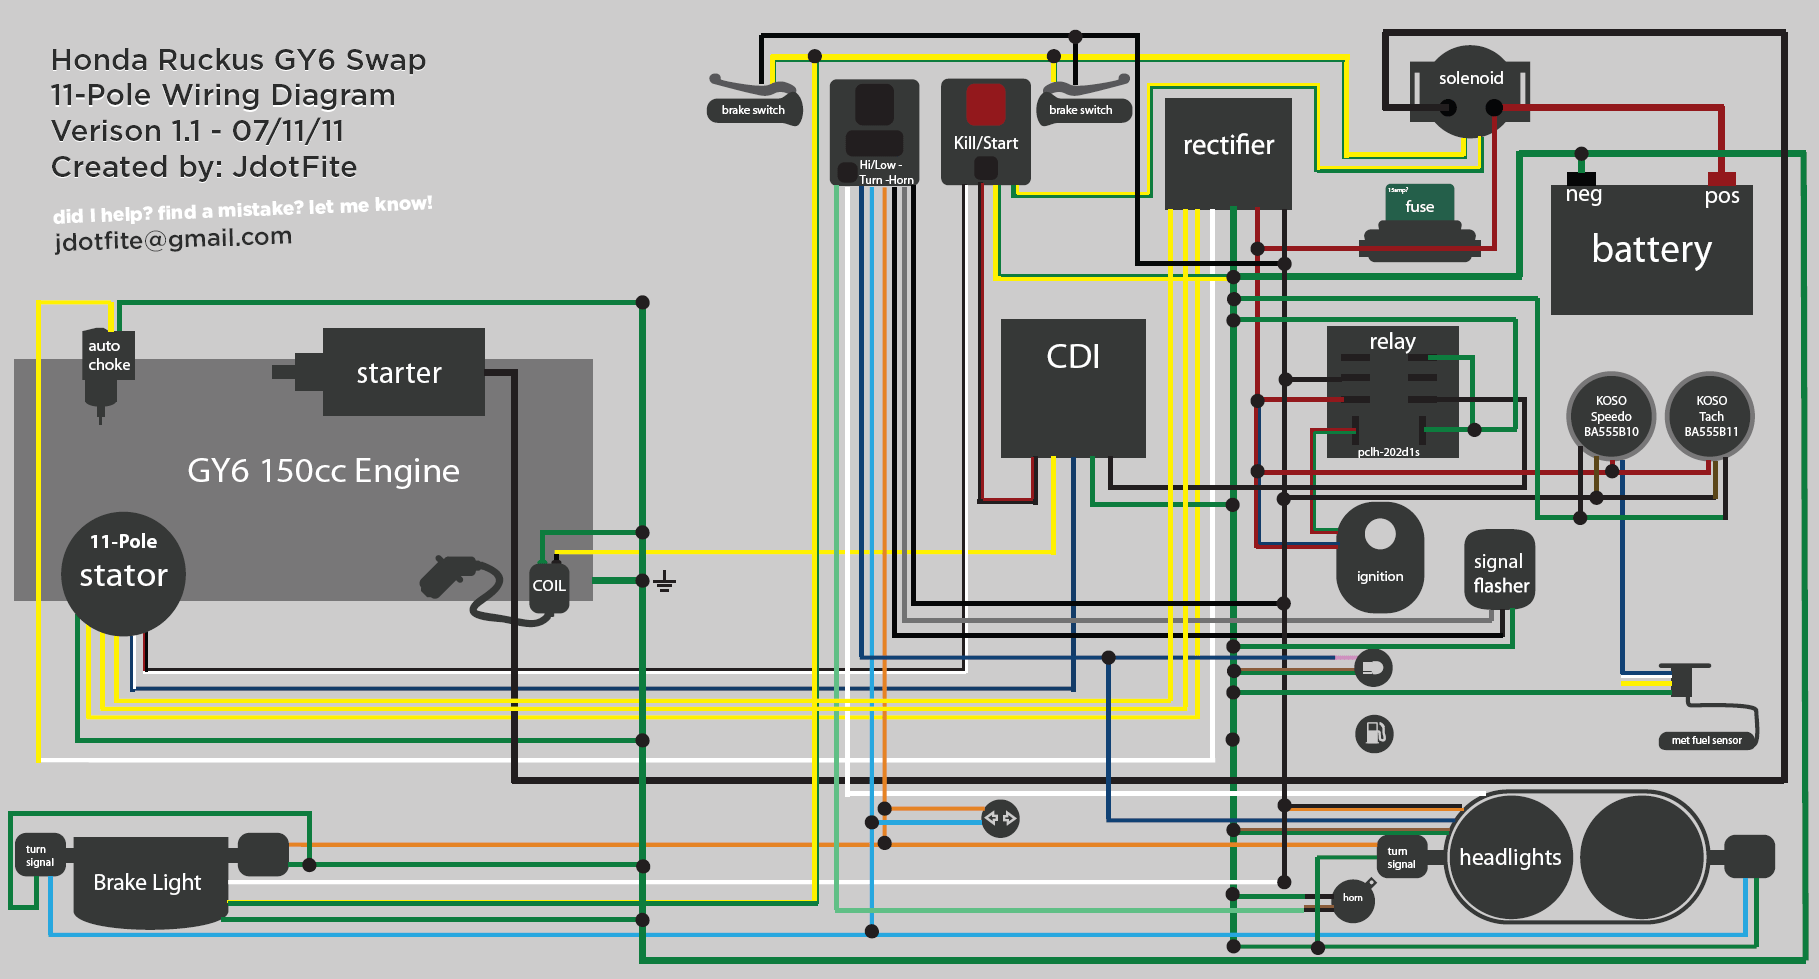 ruckus gy6 wiring diagram honda ruckus gy6 wiring diagram 2012 honda ruckus engine 150cc engine wiring diagram at aneh.co